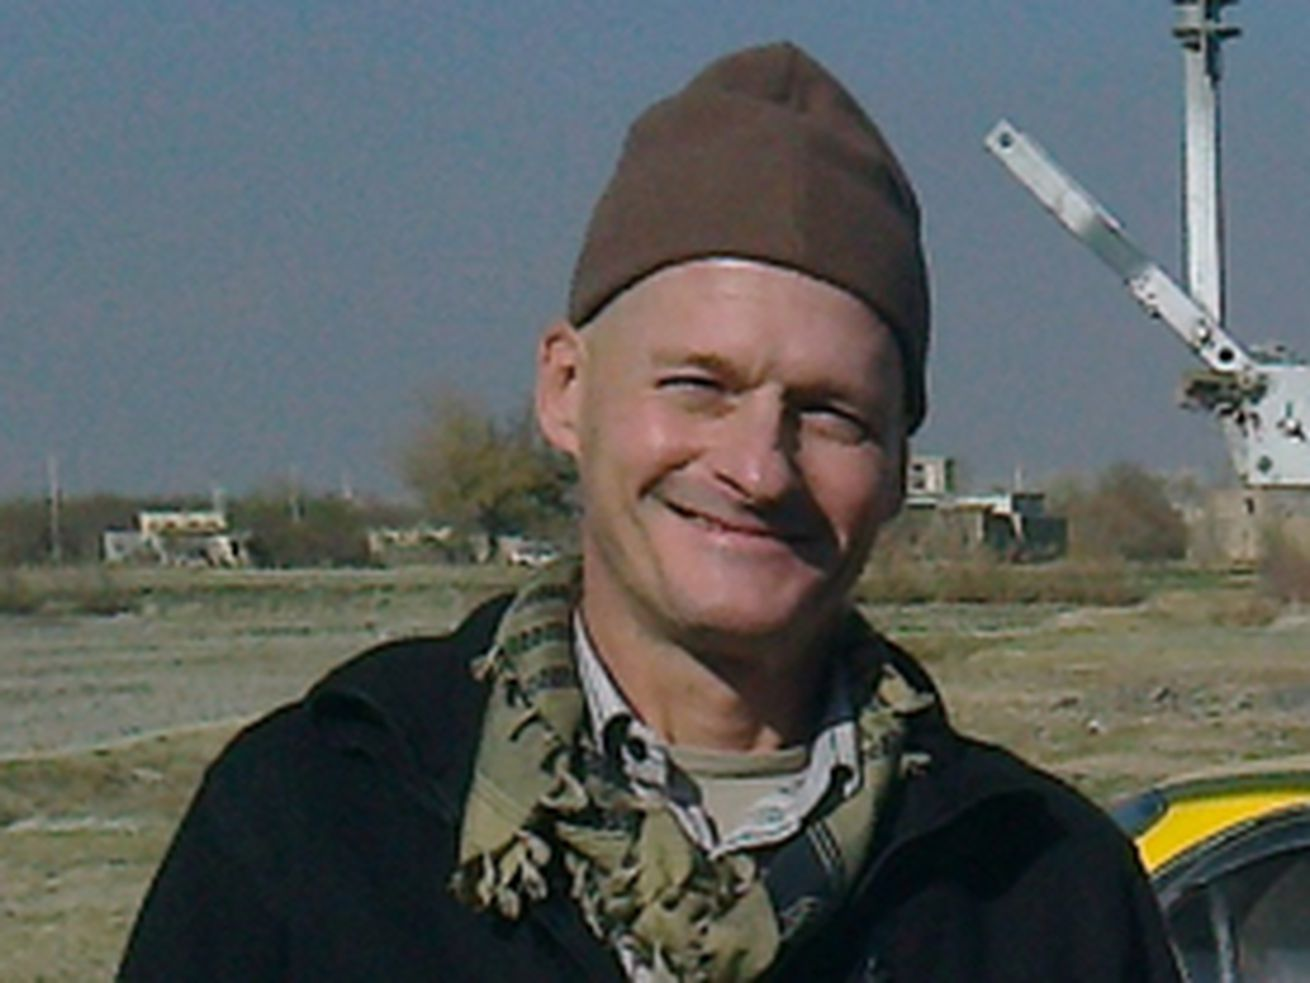 Mark Frerichs, raised in Lombard, Illinois, has been held hostage by the Taliban in Afghanistan since January 2020.